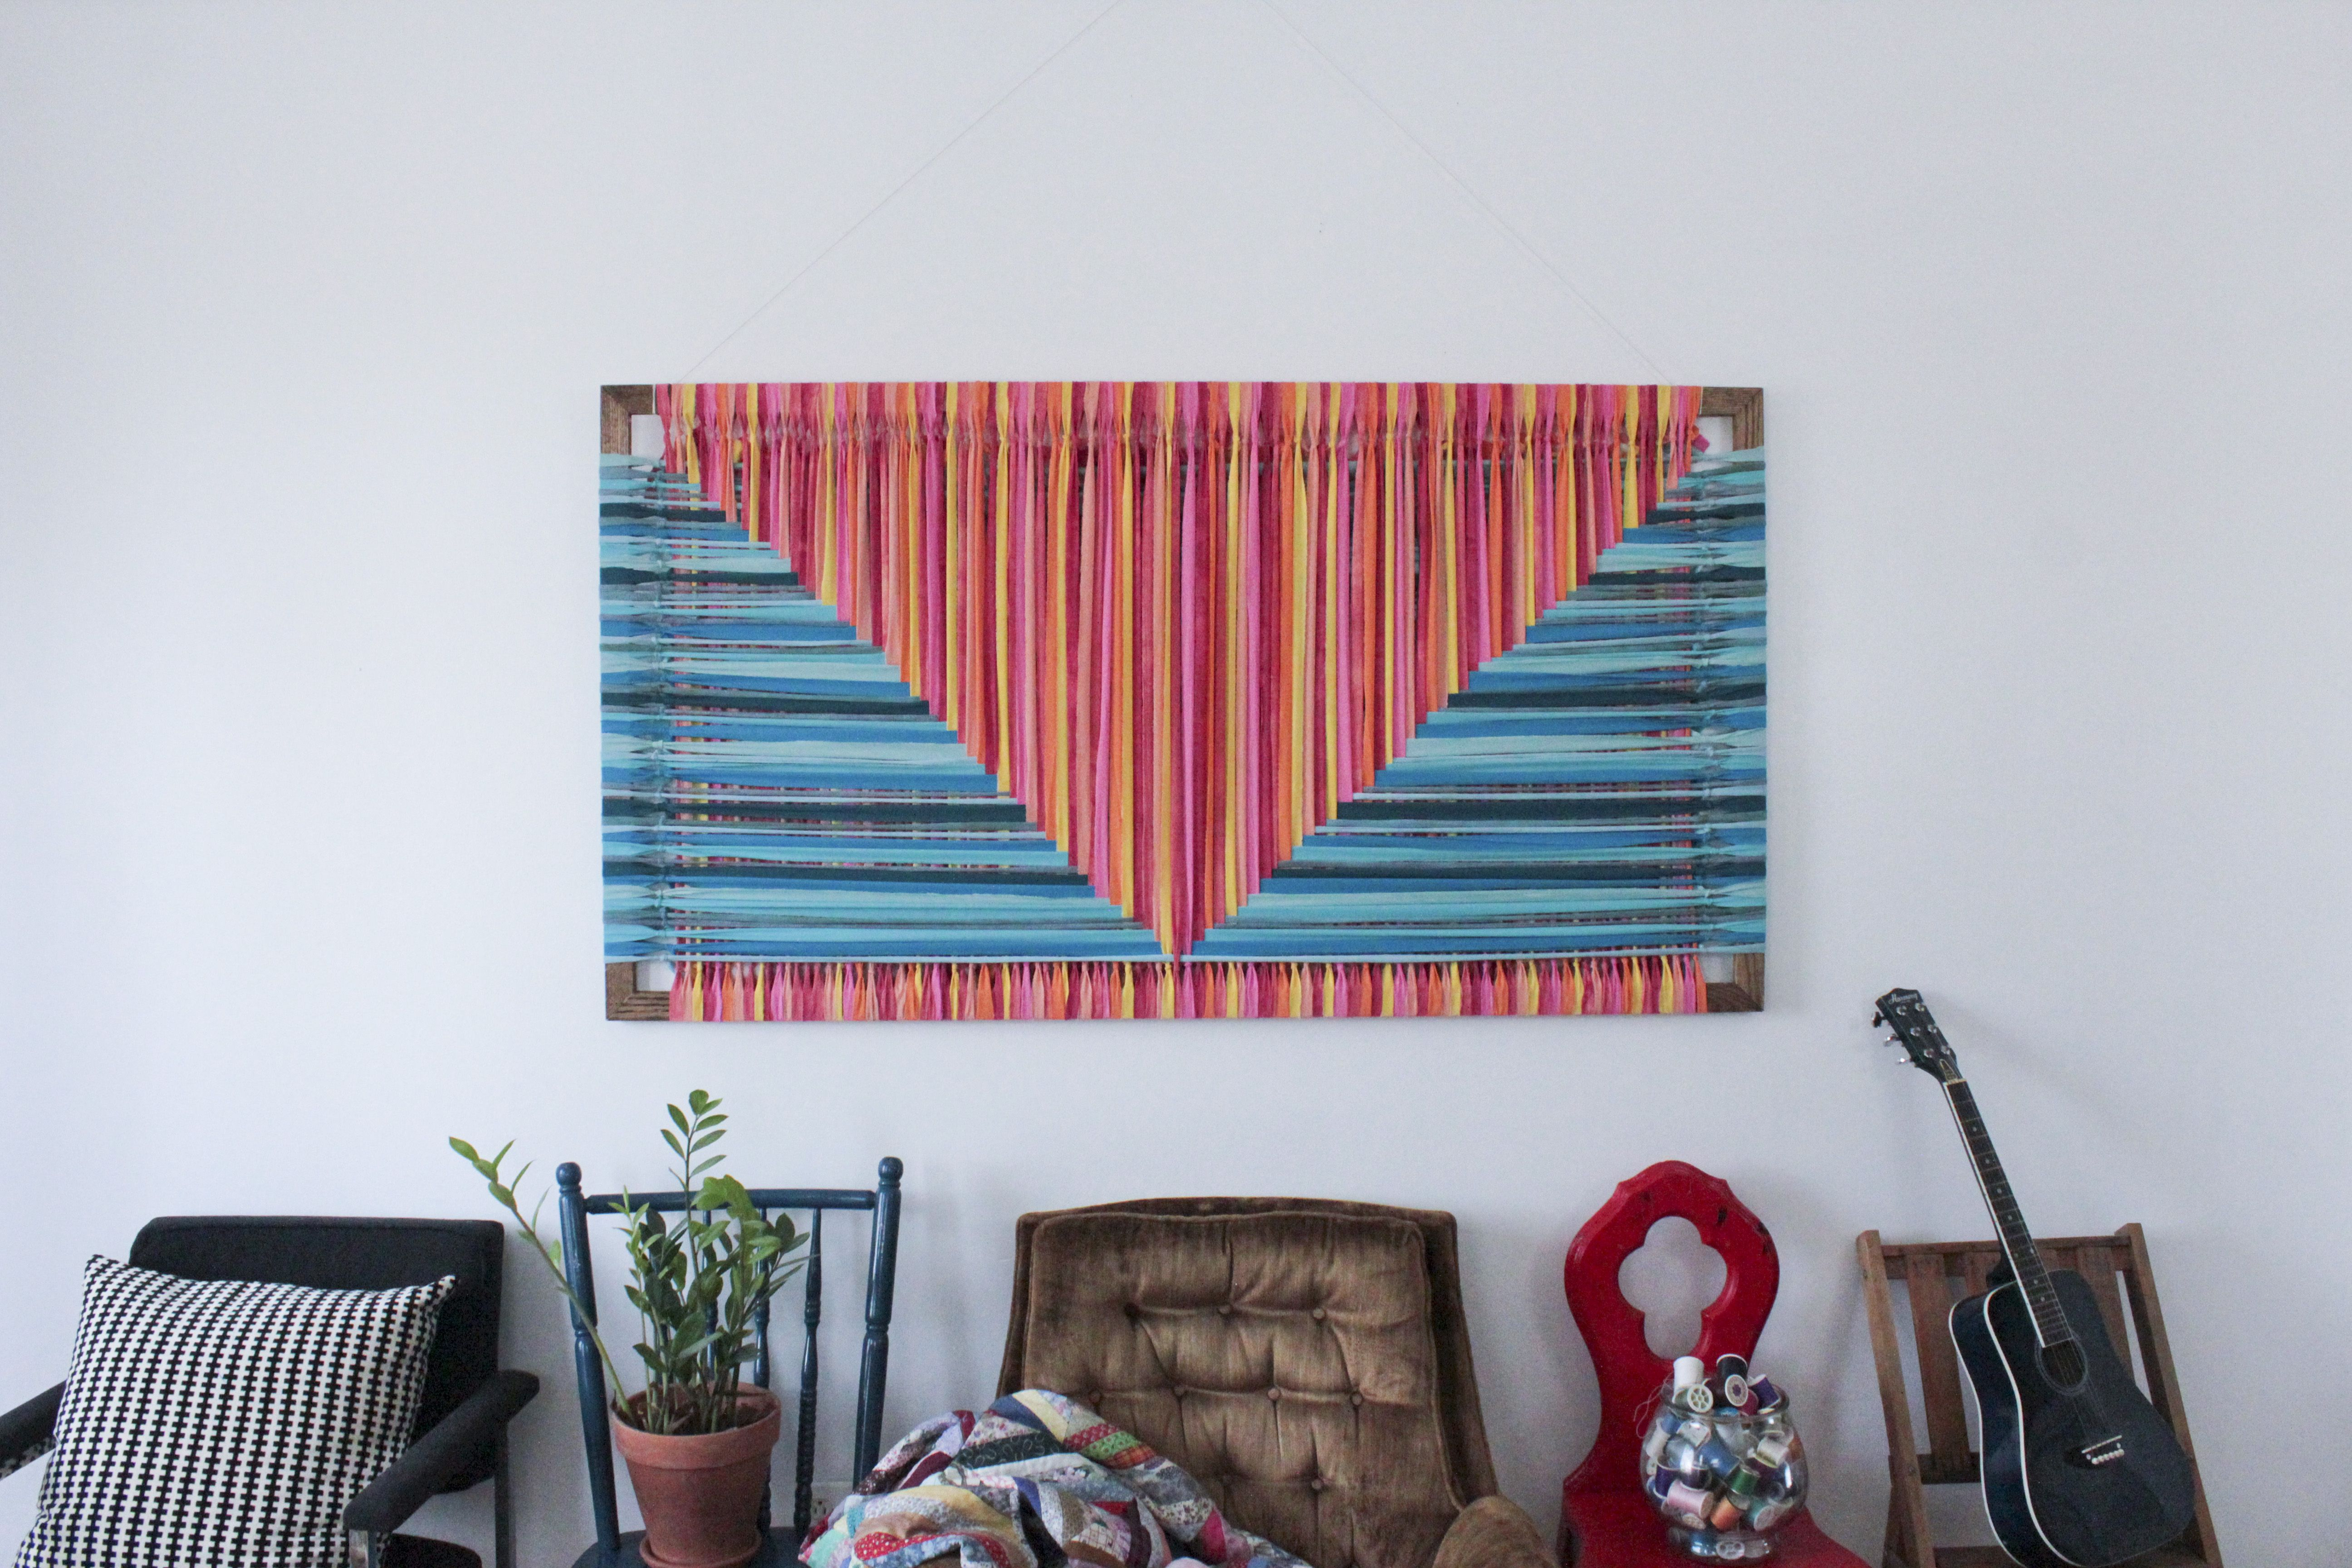 Scale Textile Wall Art made by PGR Purchase at